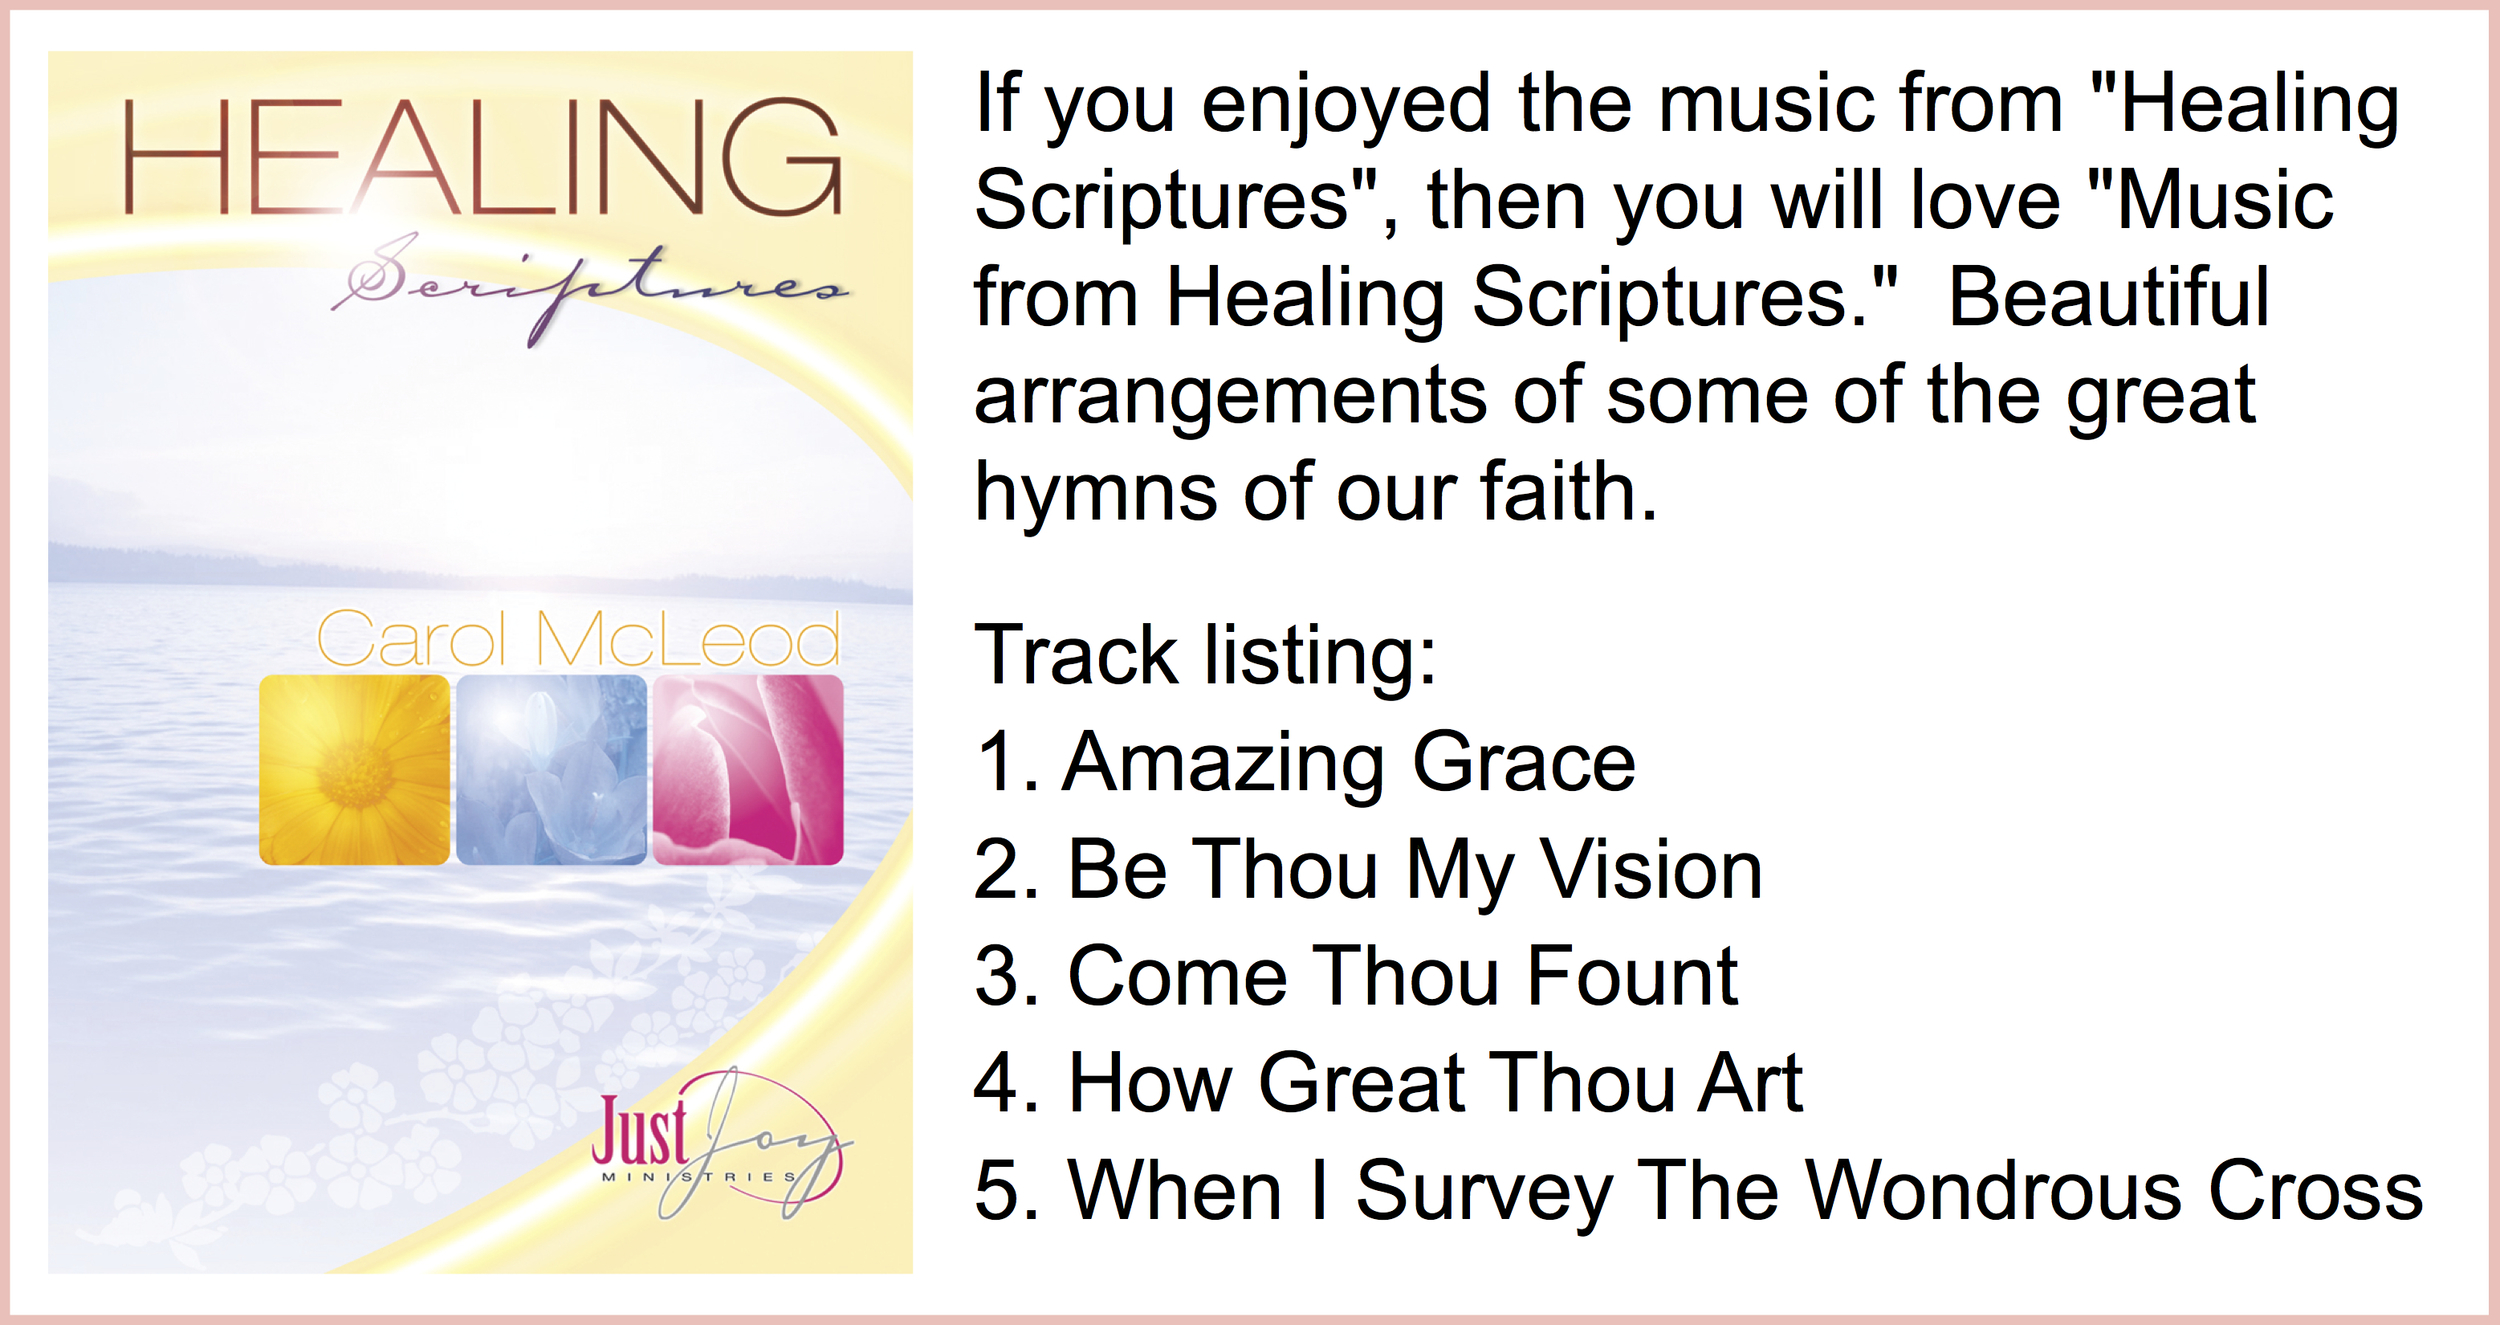 Music from Healing Scriptures Download - $5